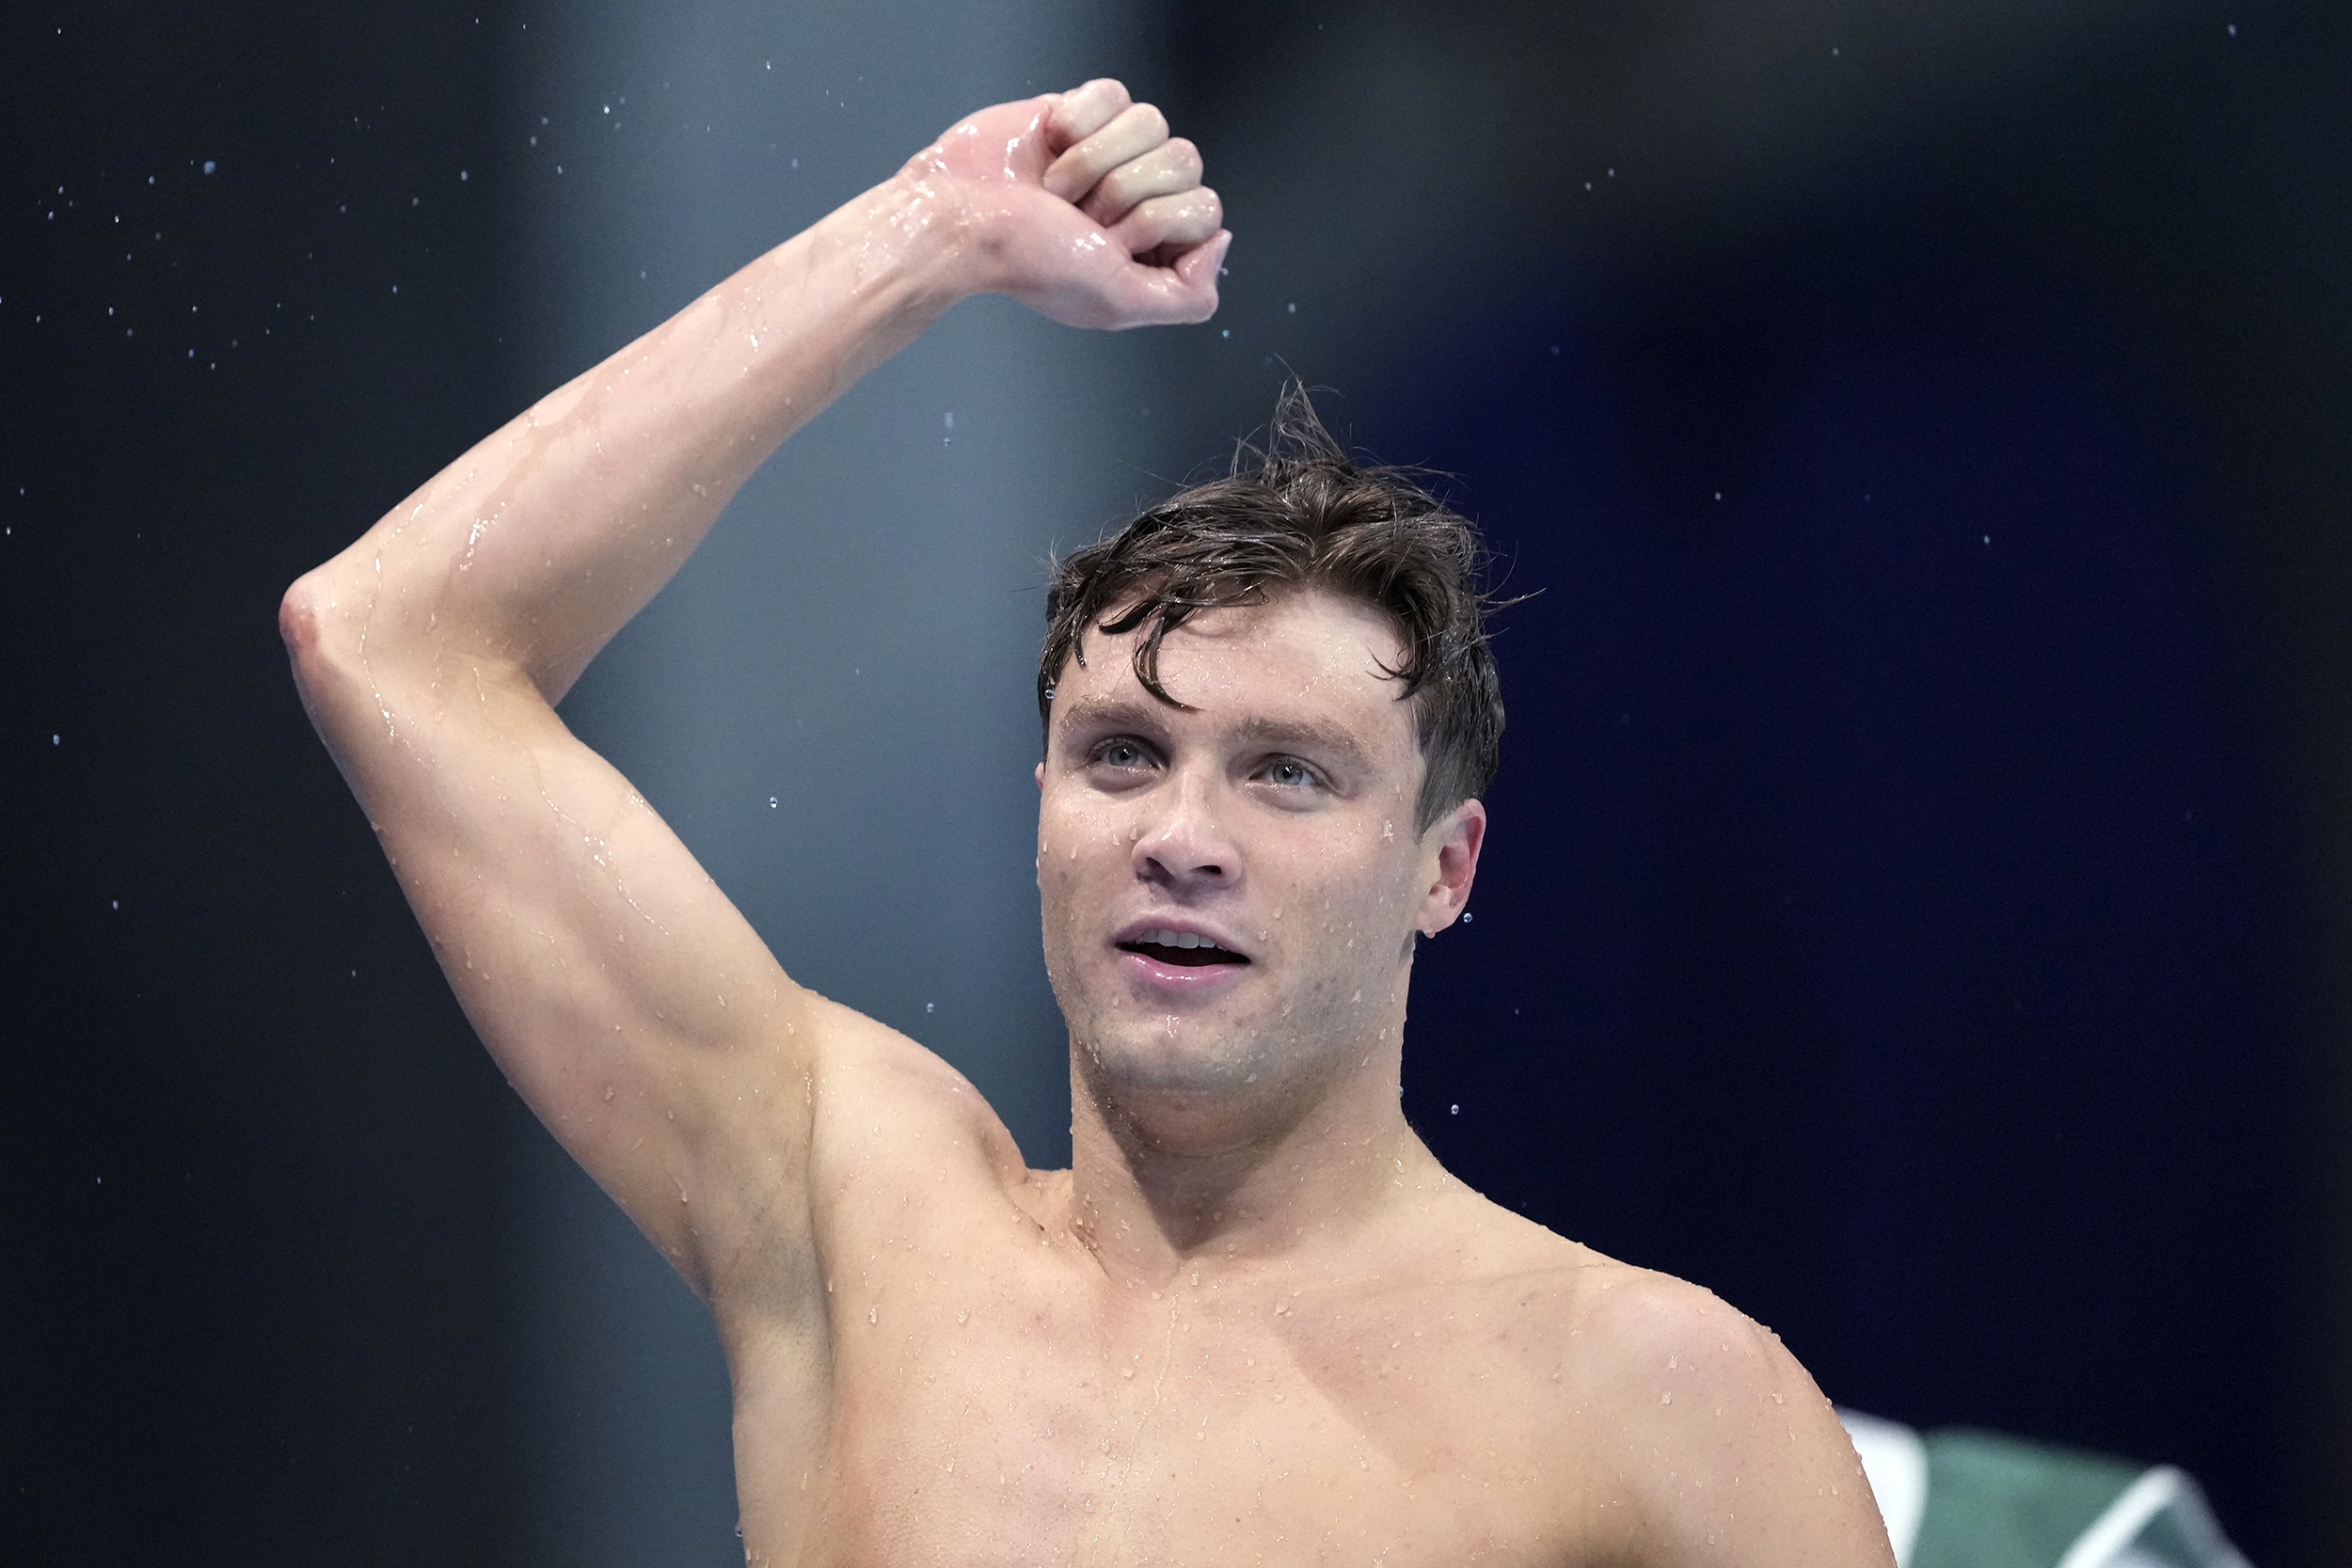 U.S. swimmer Bobby Finke comes from behind to win Olympic gold in 800-meter free